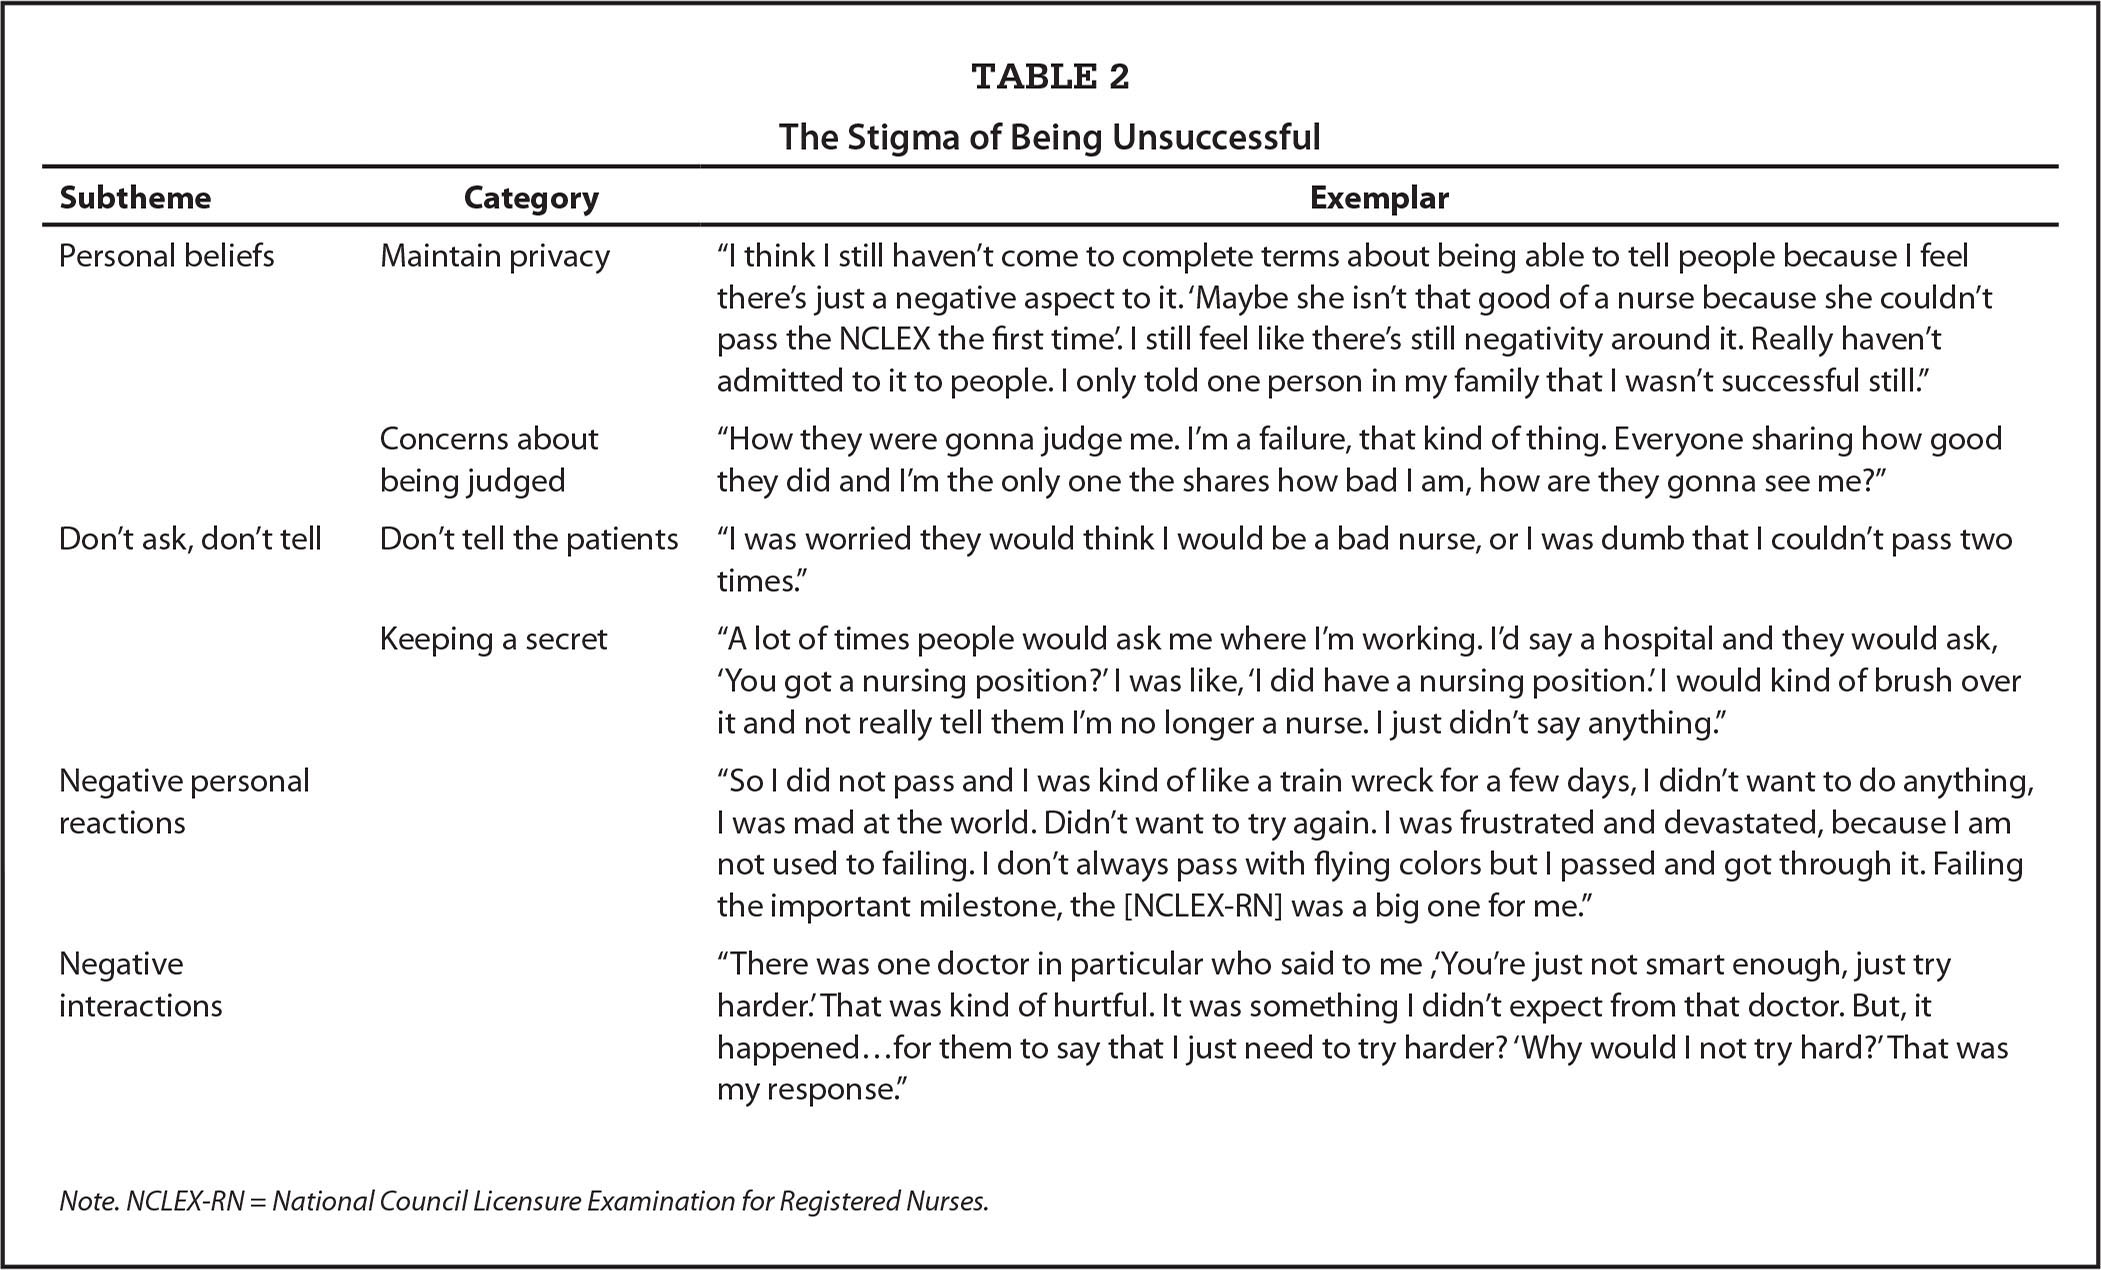 The Stigma of Being Unsuccessful